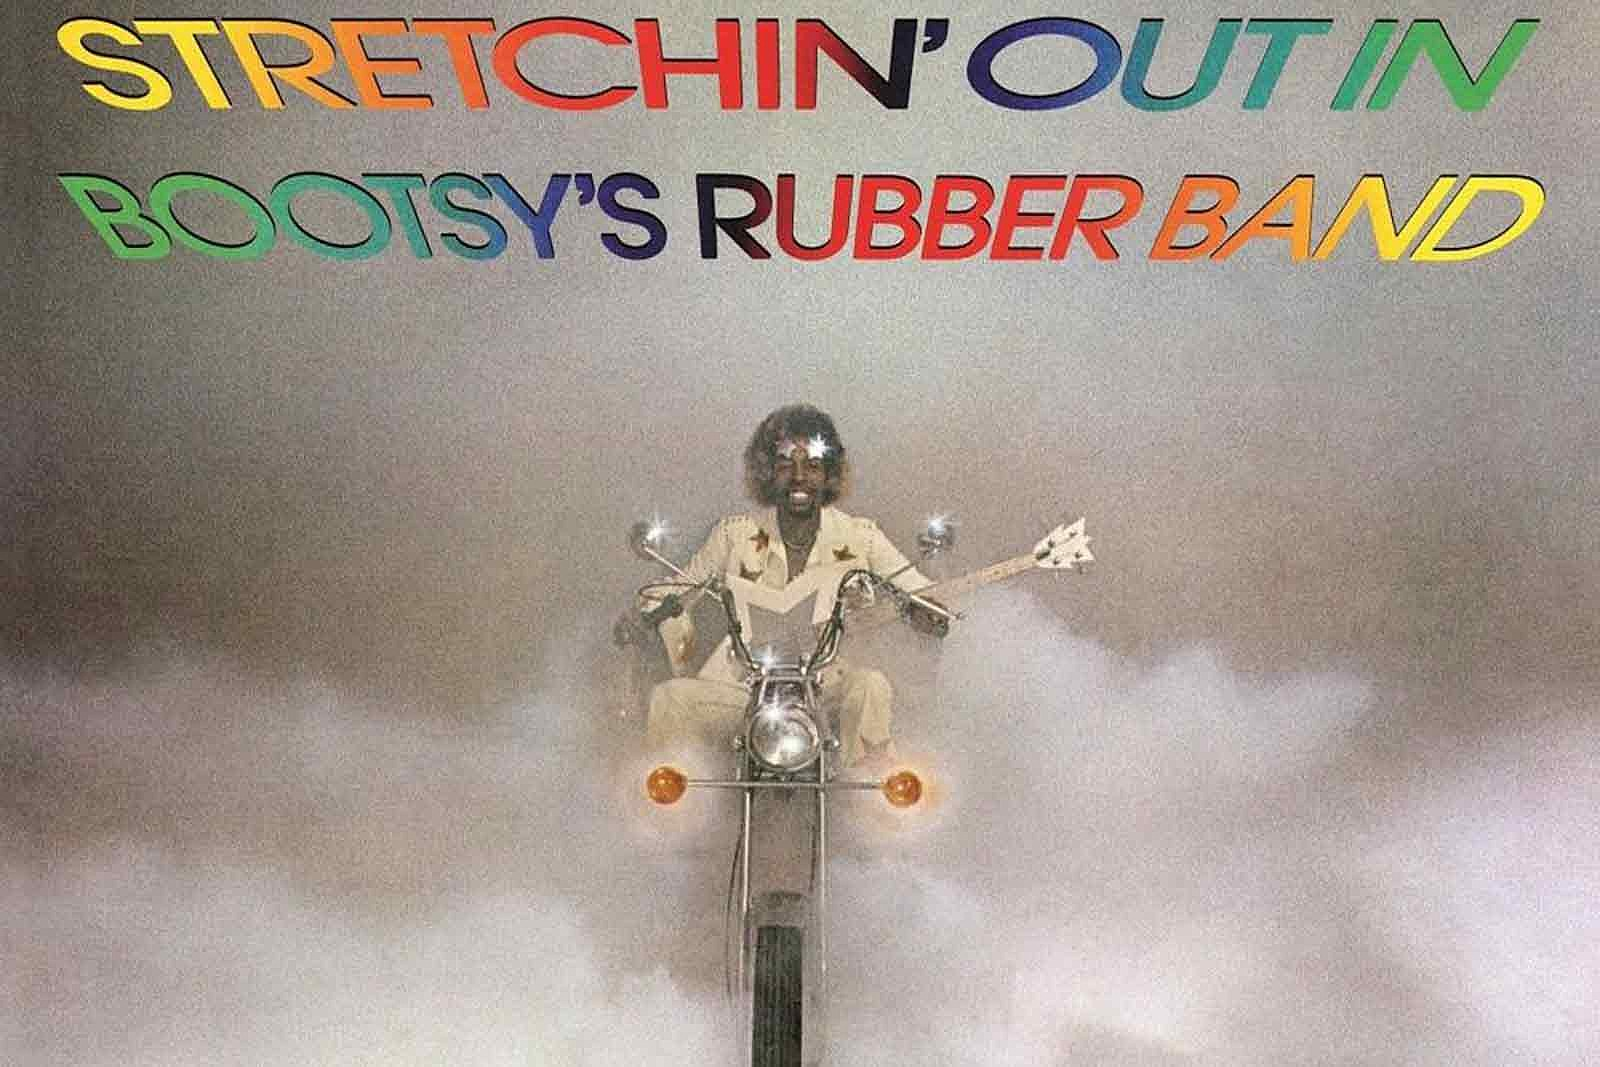 45 Years Ago: Bootsy's Rubber Band Transcend on 'Stretchin' Out'